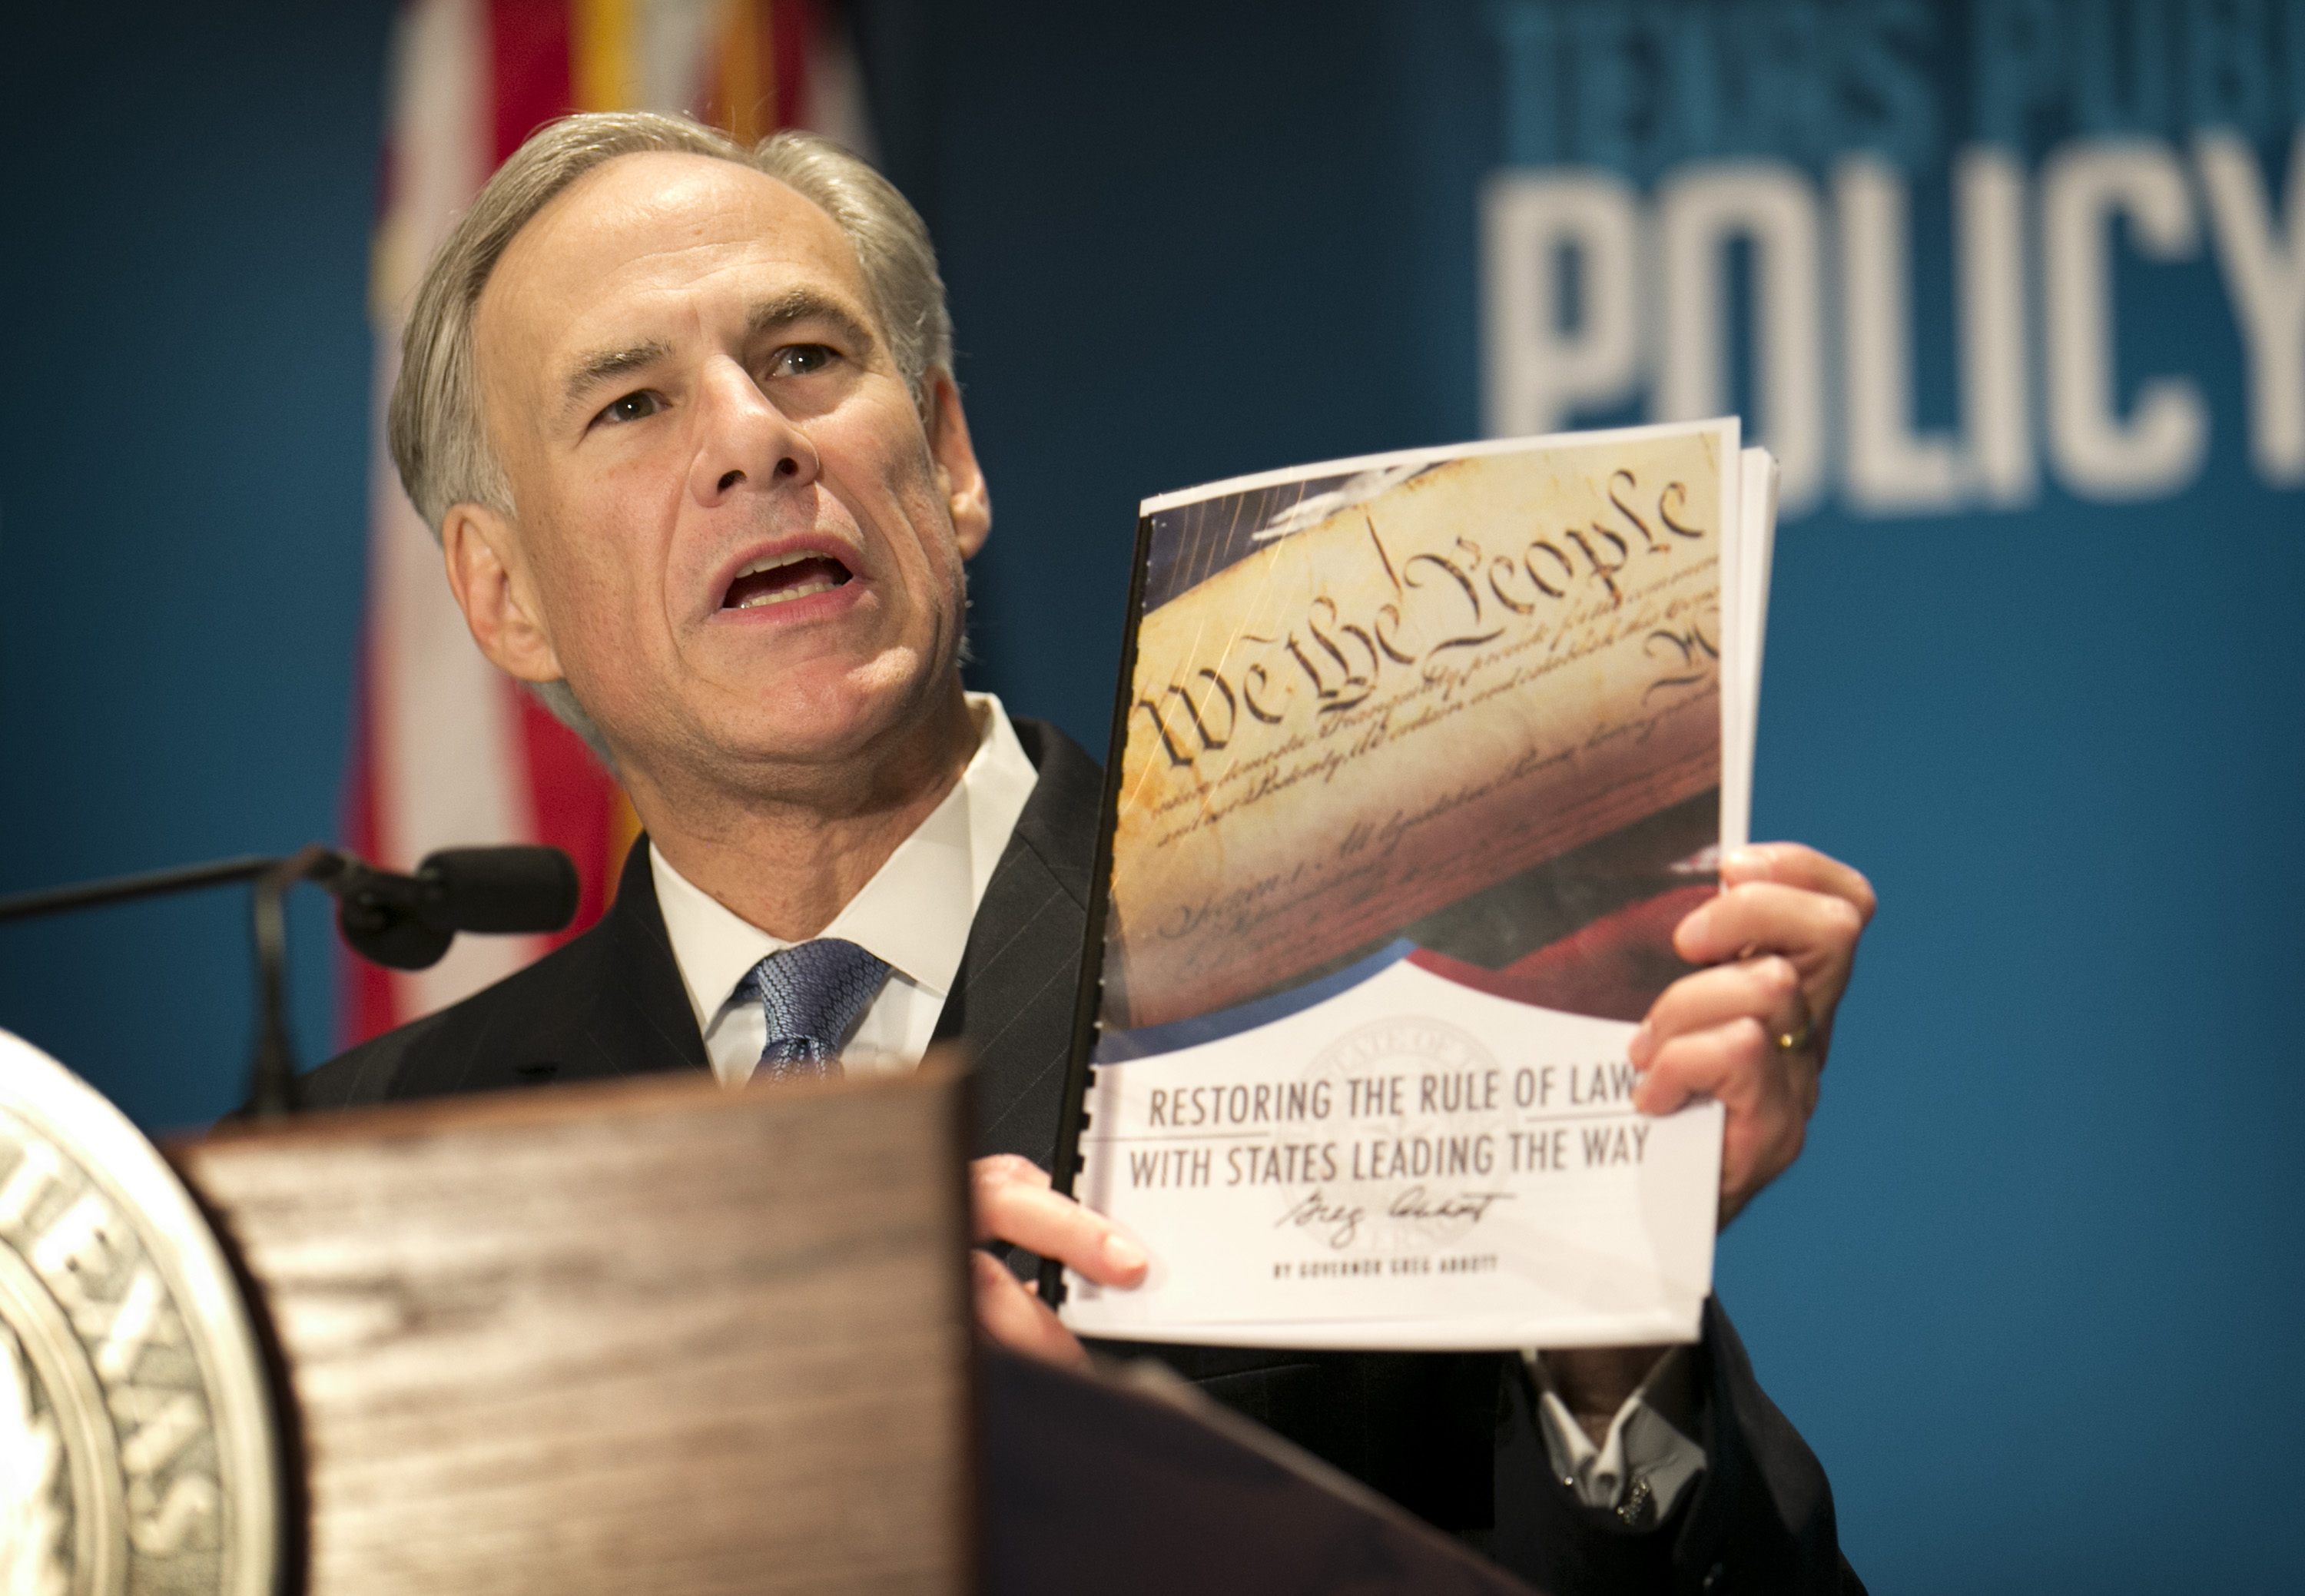 Texas Gov Greg Abbott Calls For Convention Of States To Take Back States Rights Politics Dallas News